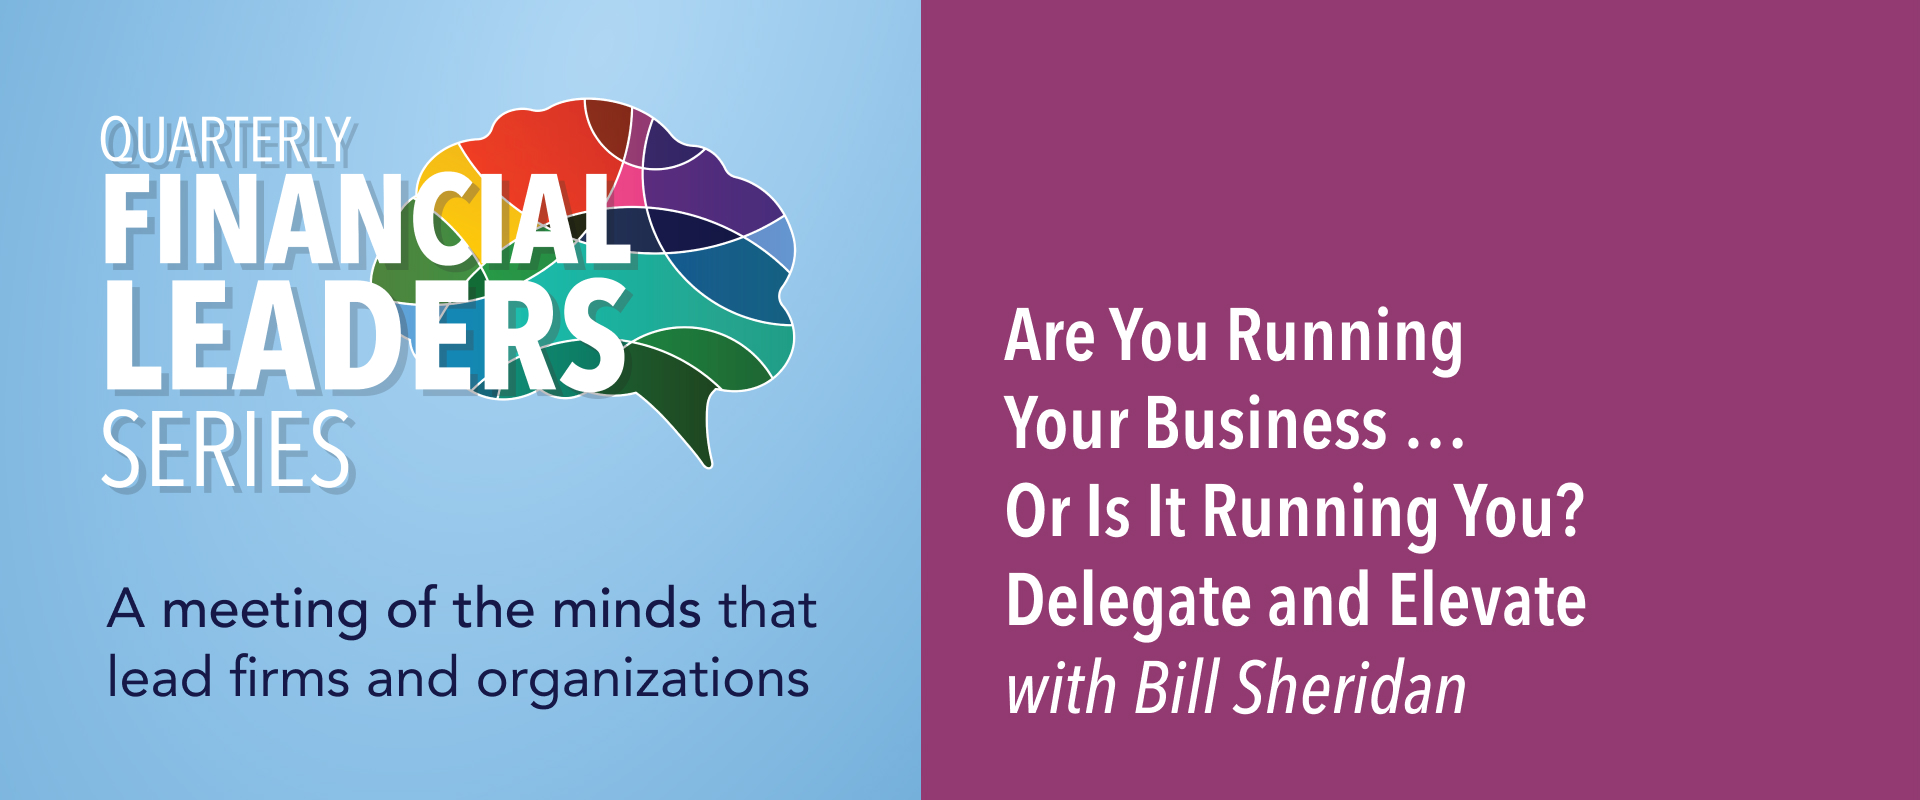 Quarterly Financial Leaders Series: Are You Running Your Business … Or Is It Running You? Delegate and Elevate